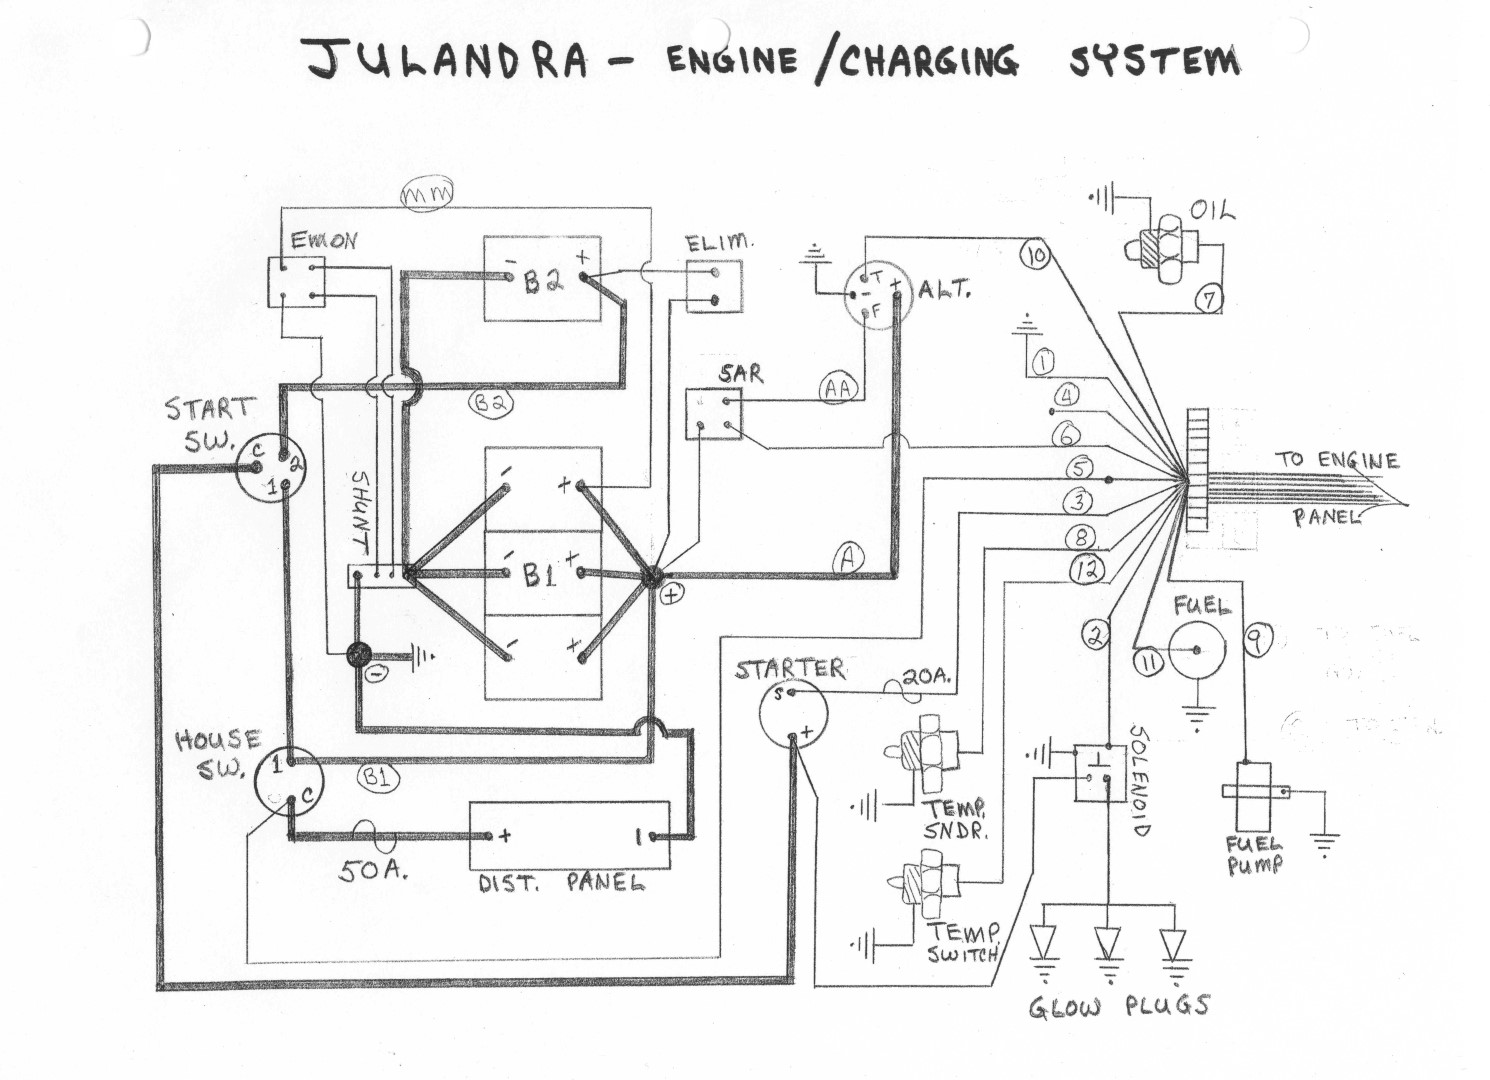 boat running light wiring diagram for universal ignition switch catalina 25 sailboat parts